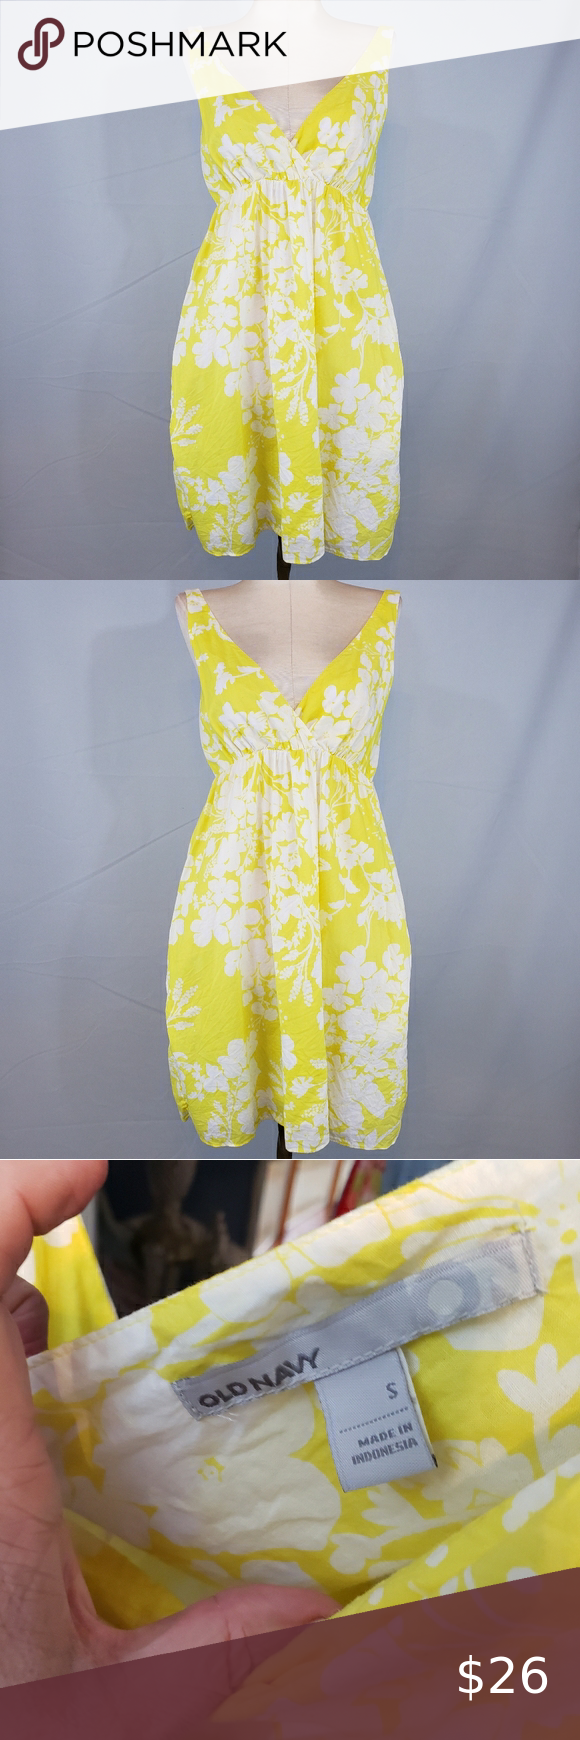 Old Navy Yellow And White Dress Size Small Yellow And White Dress Red Dress Maxi White Swing Dress [ 1740 x 580 Pixel ]